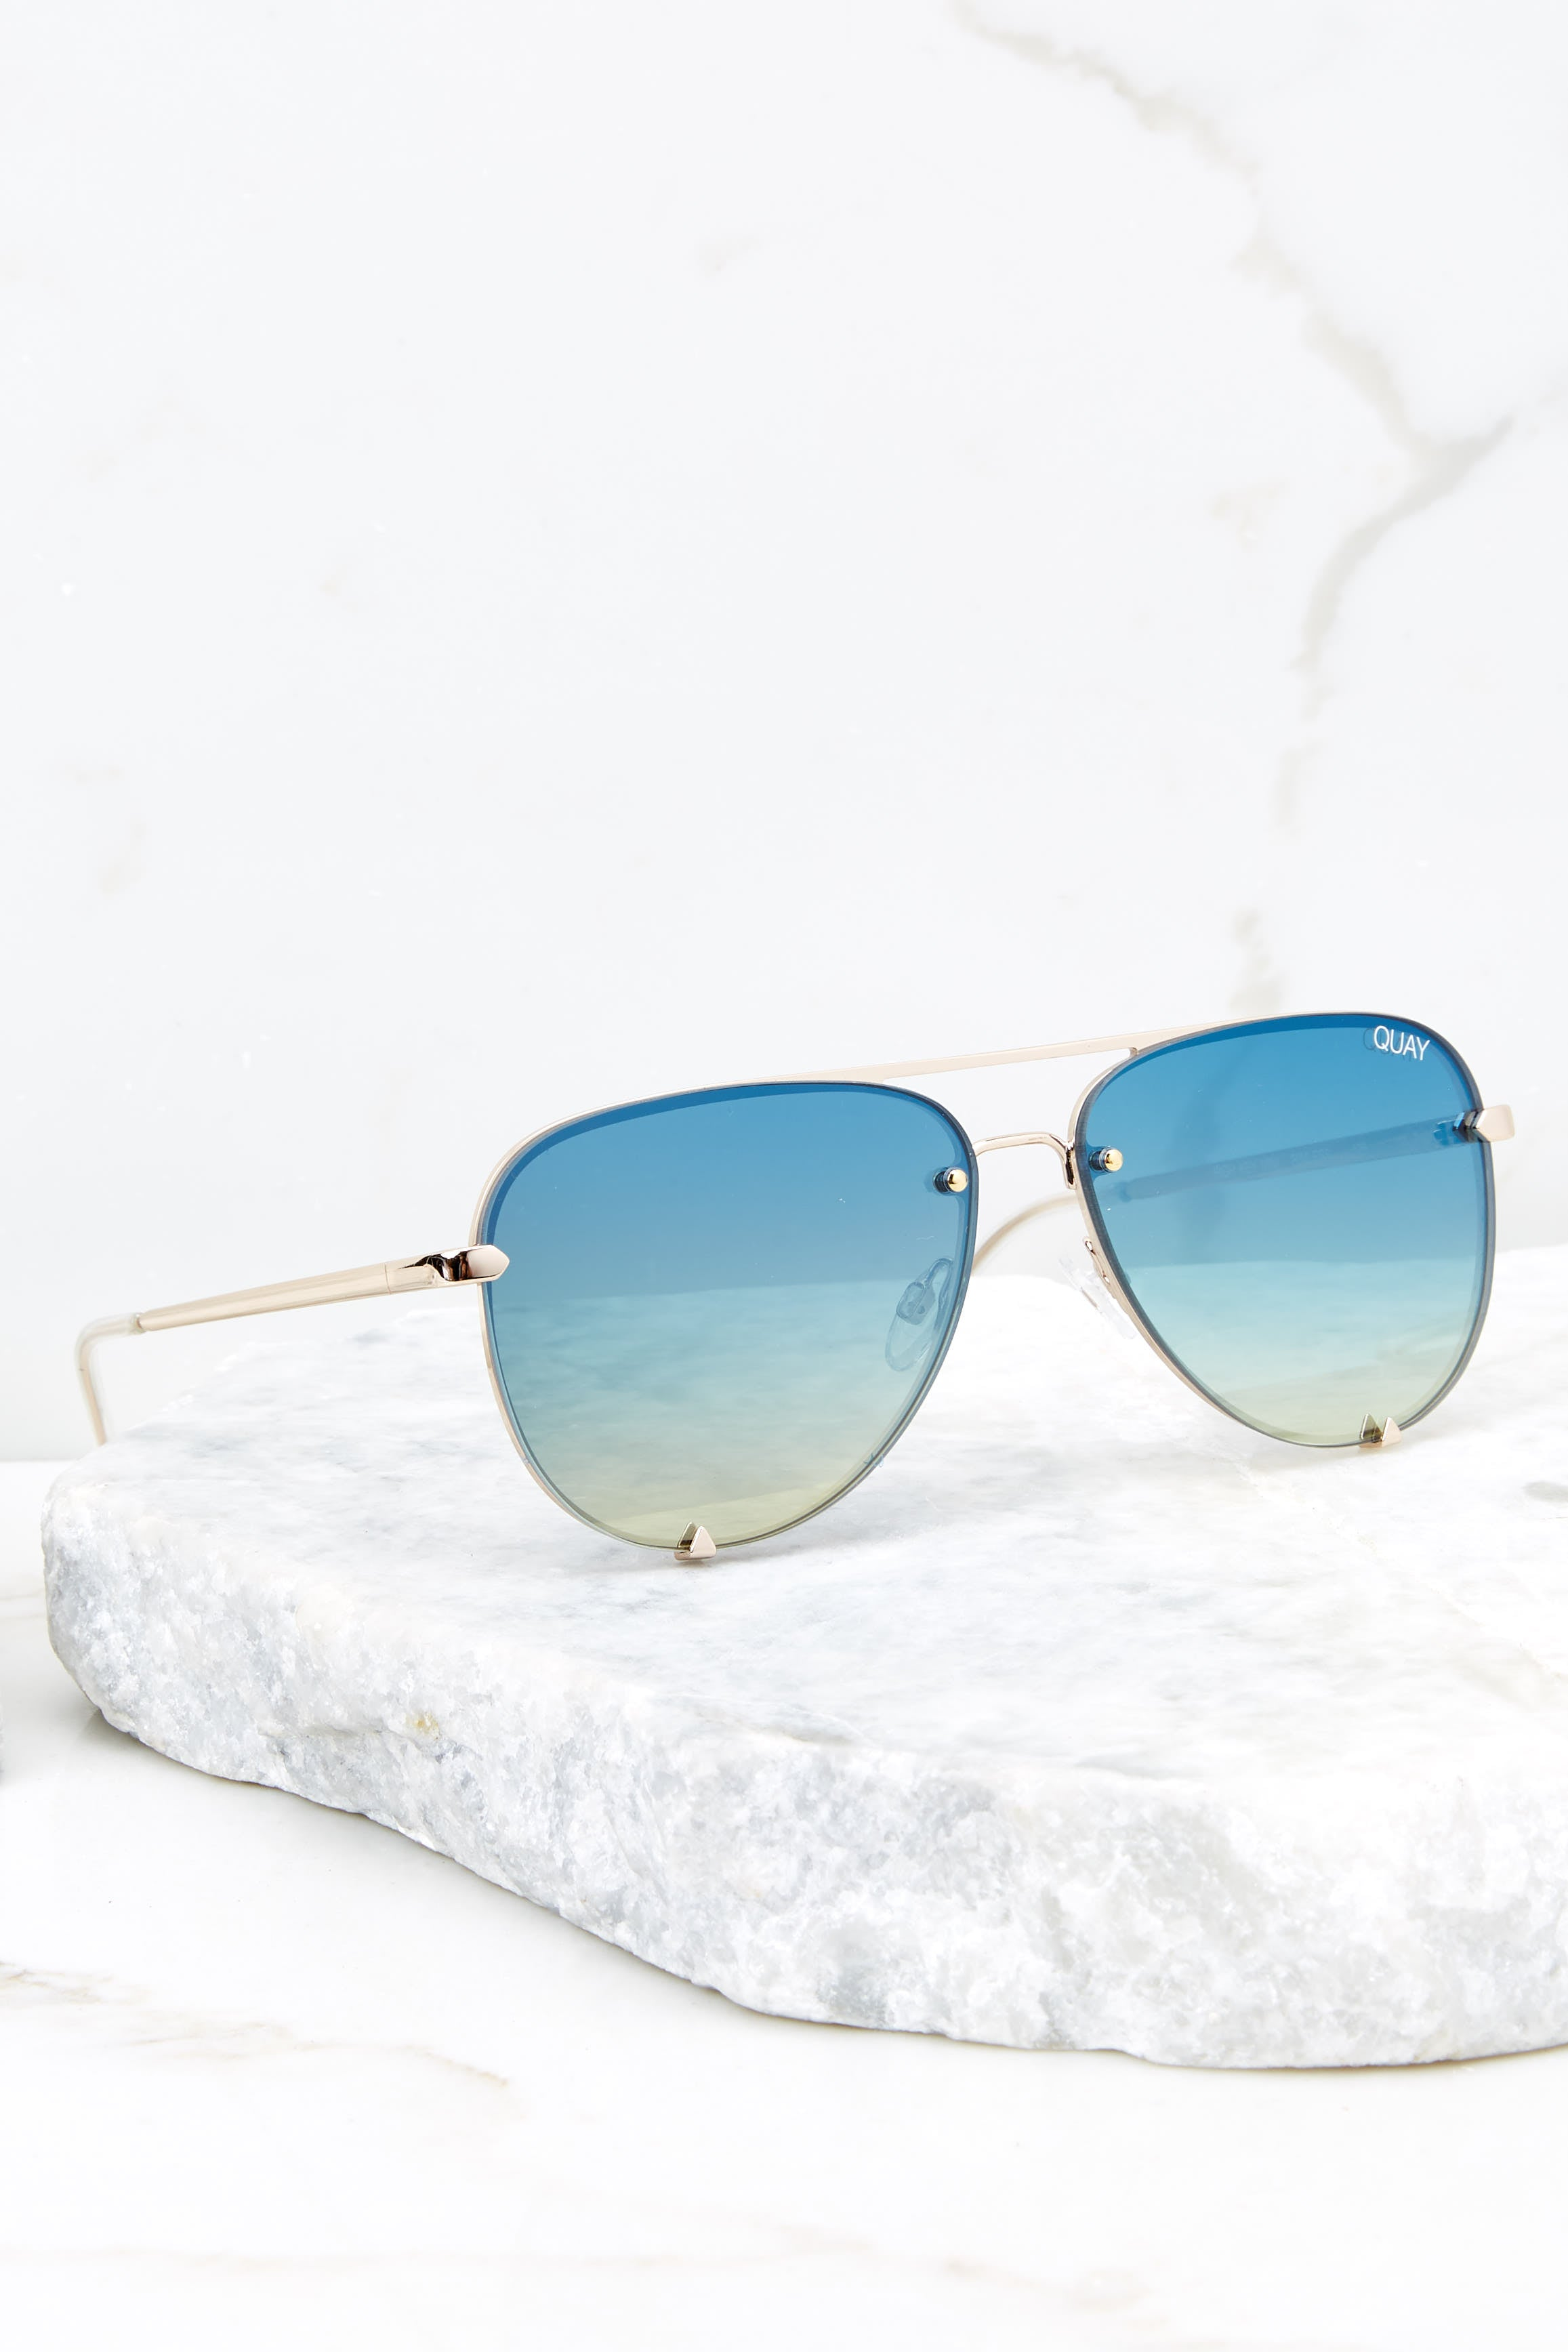 2 High Key Mini Rimless Gold Blue Sunglasses at reddress.com